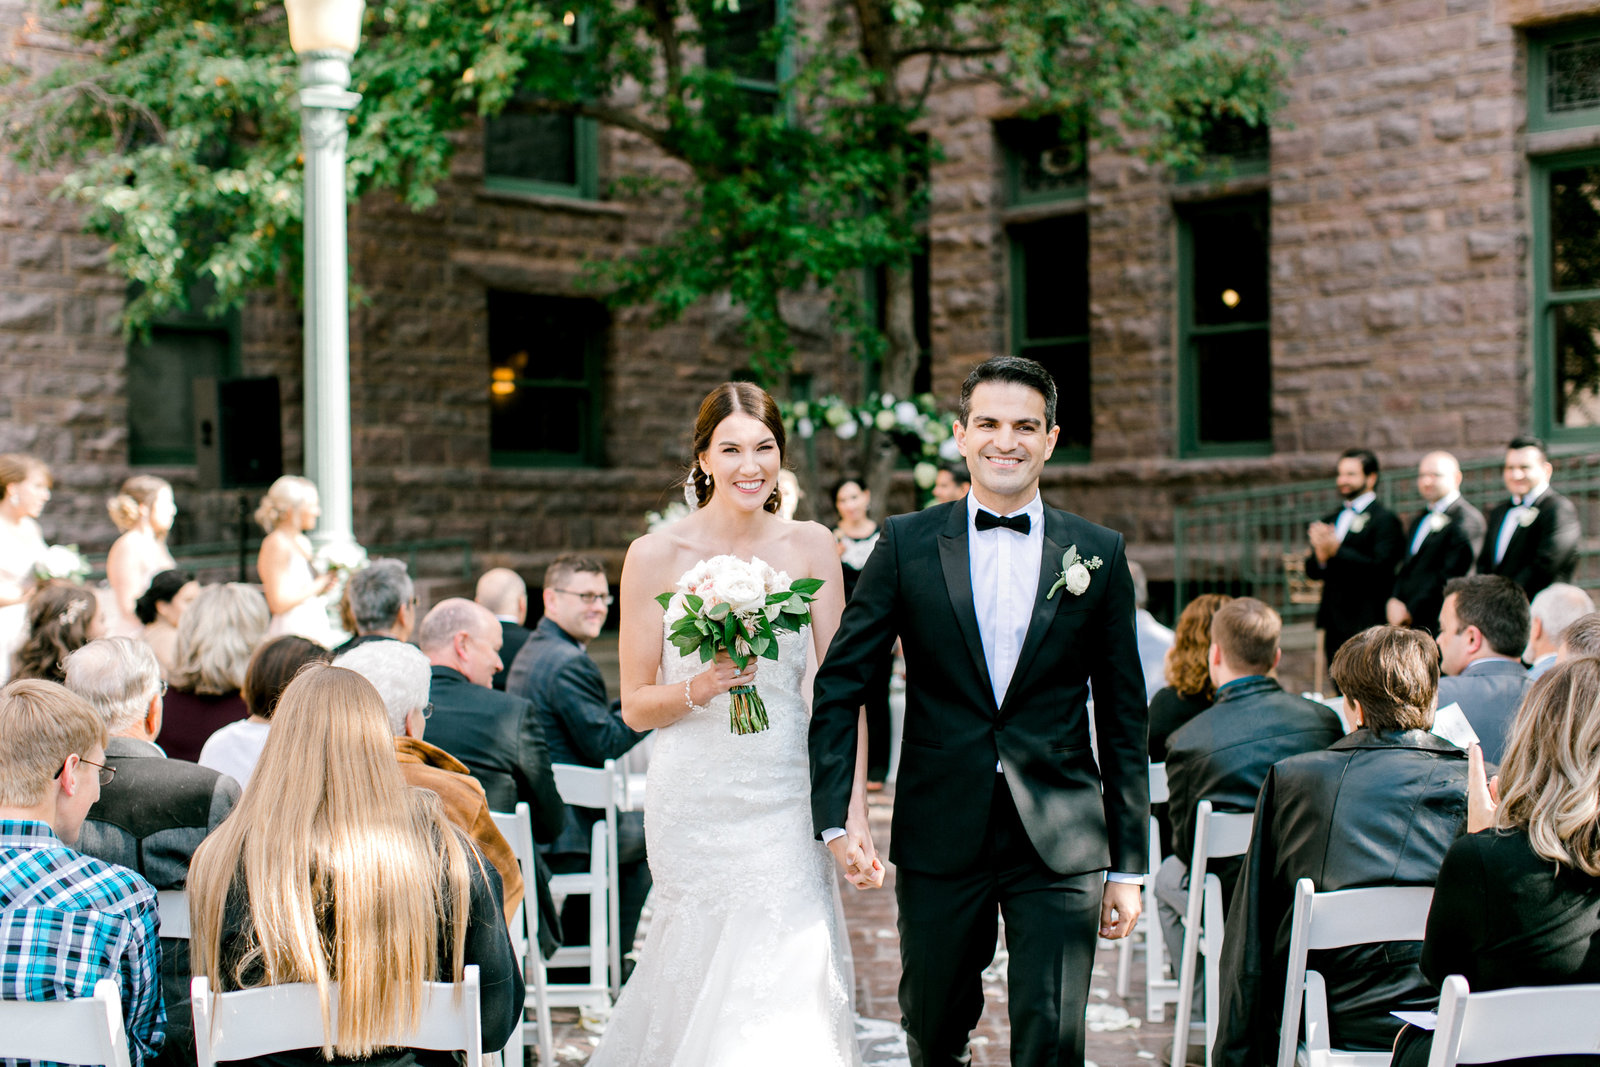 persian-american-wedding-old-courthouse-museum-wedding-sioux-falls-minneaplis-wedding-photographer-mackenzie-orth-photography-5